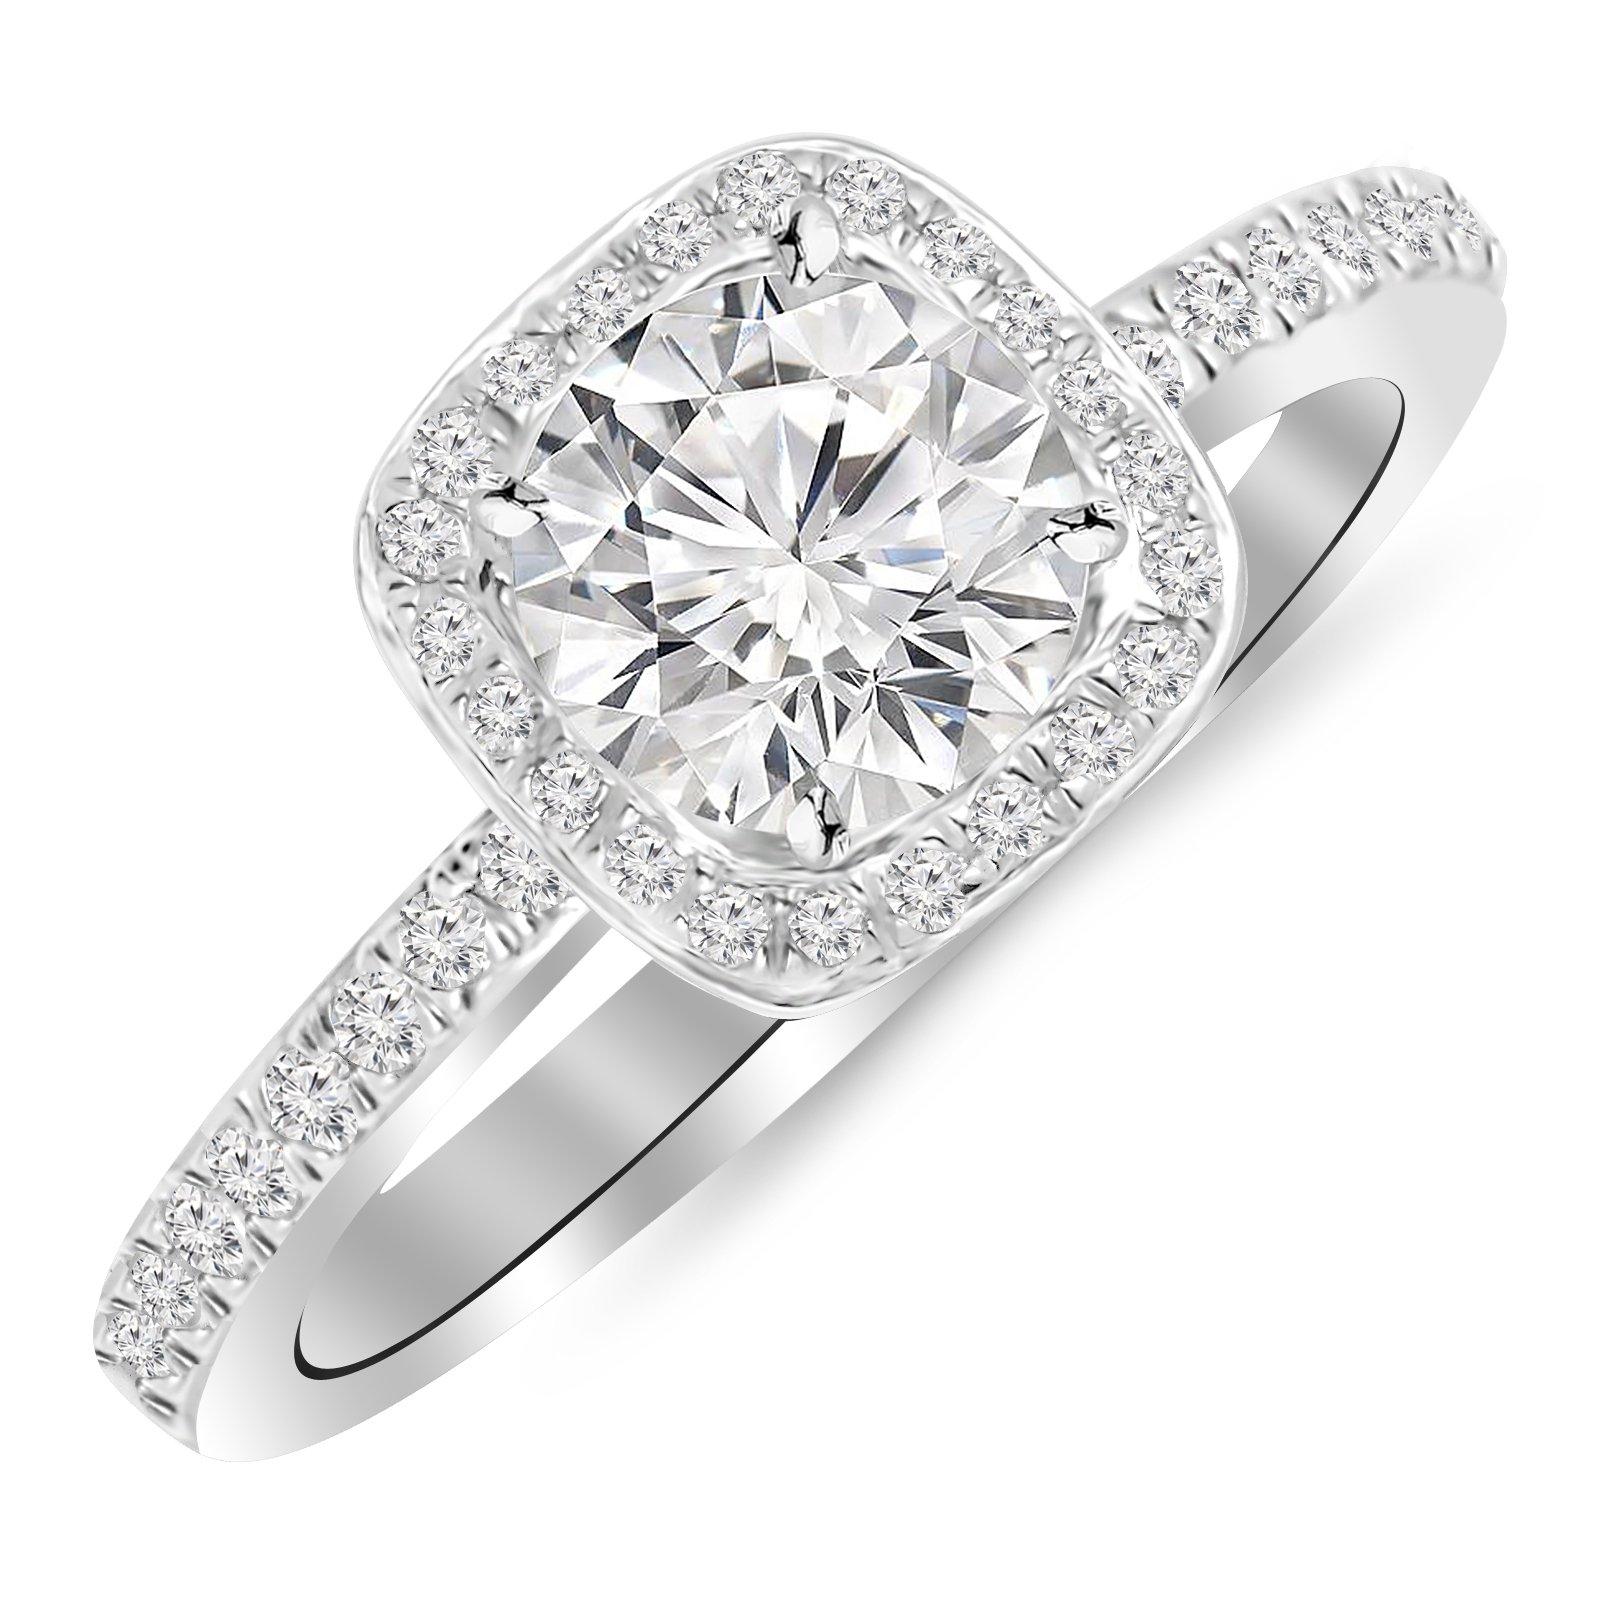 0.91 Carat Classic Halo Style Cushion Shape Diamond Engagement Ring 14K White Gold with a 0.60 Carat H-I I2 Round Brilliant Cut/Shape Center